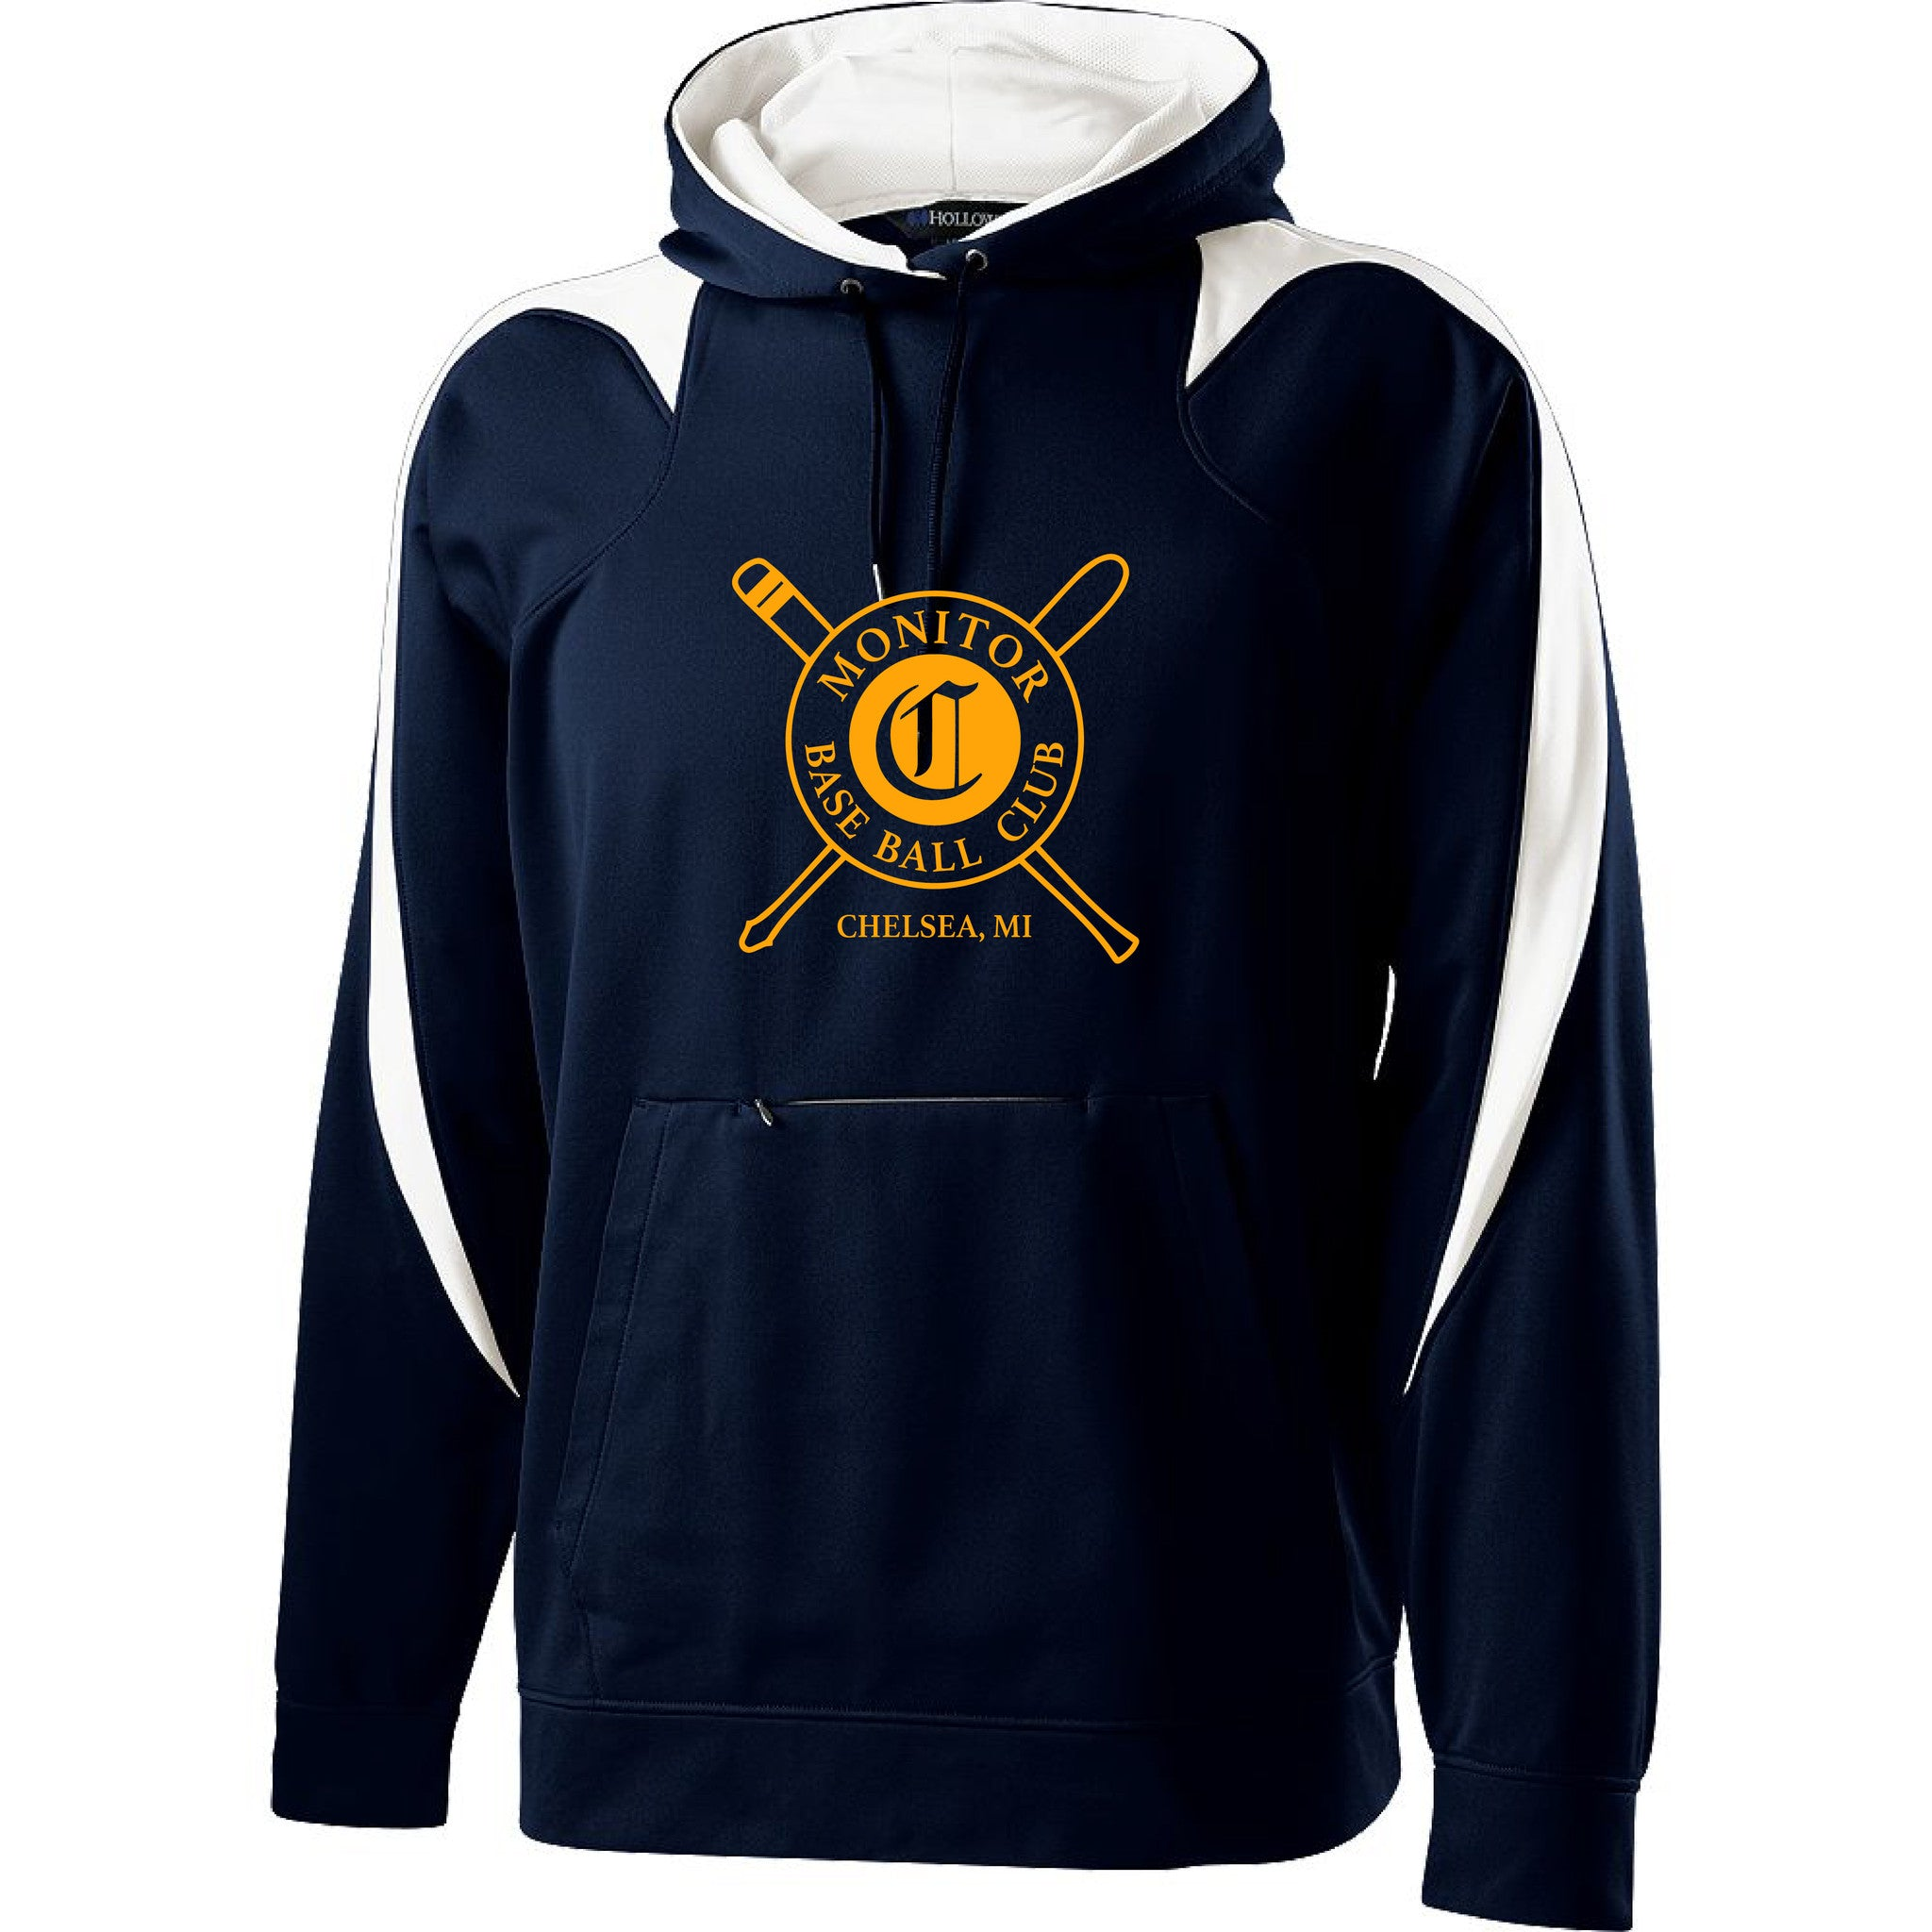 Adult Chelsea Monitor Chaos Hoodie